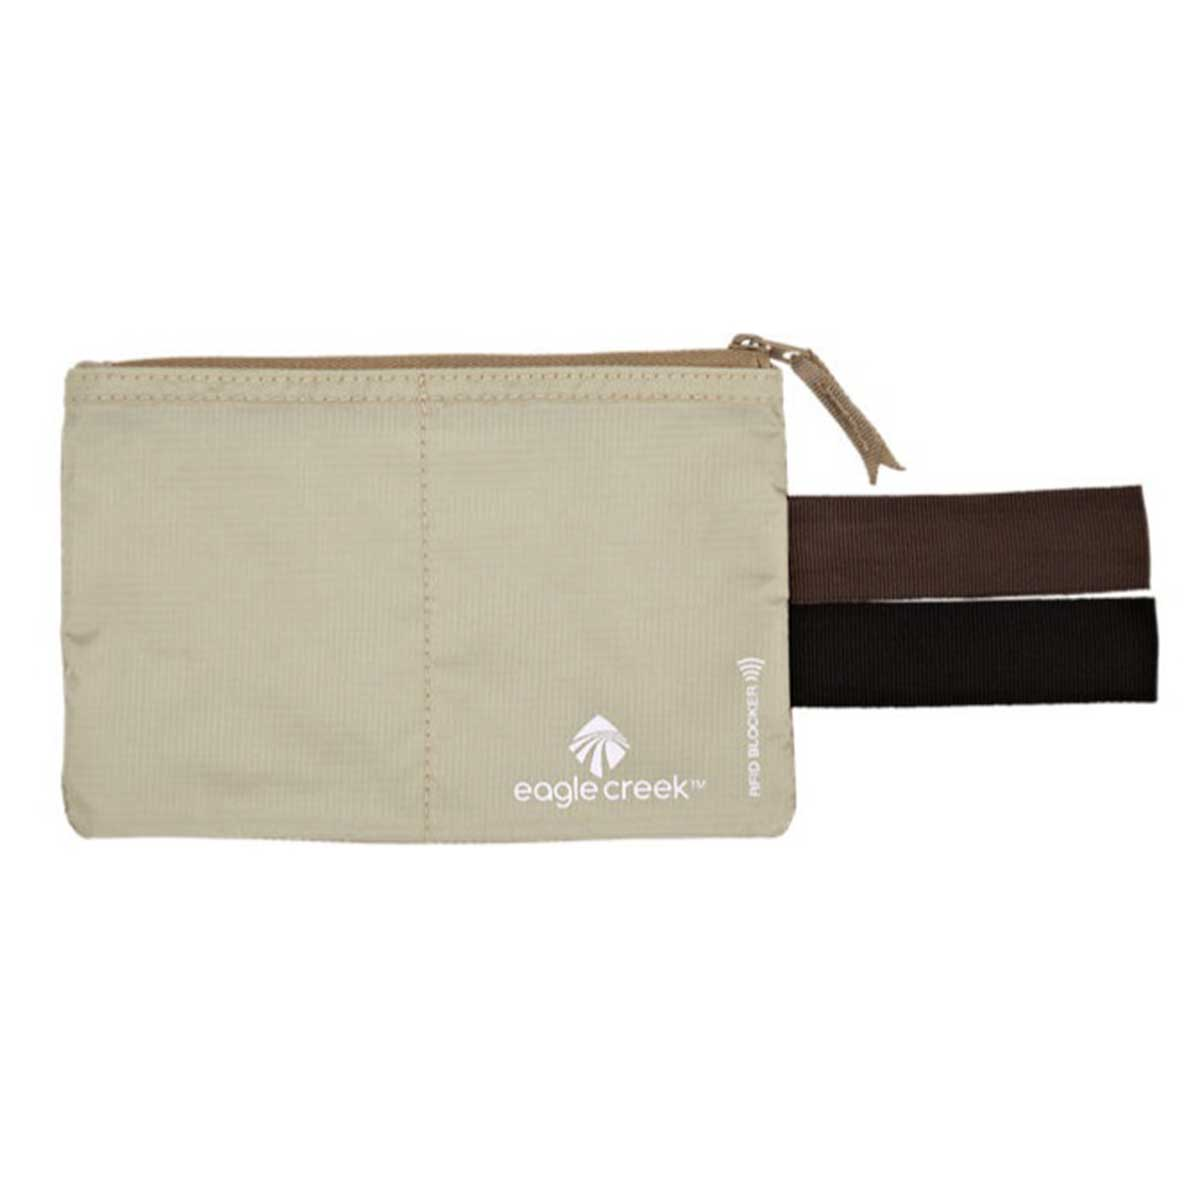 Eagle Creek RFID Blocker Hidden Pocket in Tan